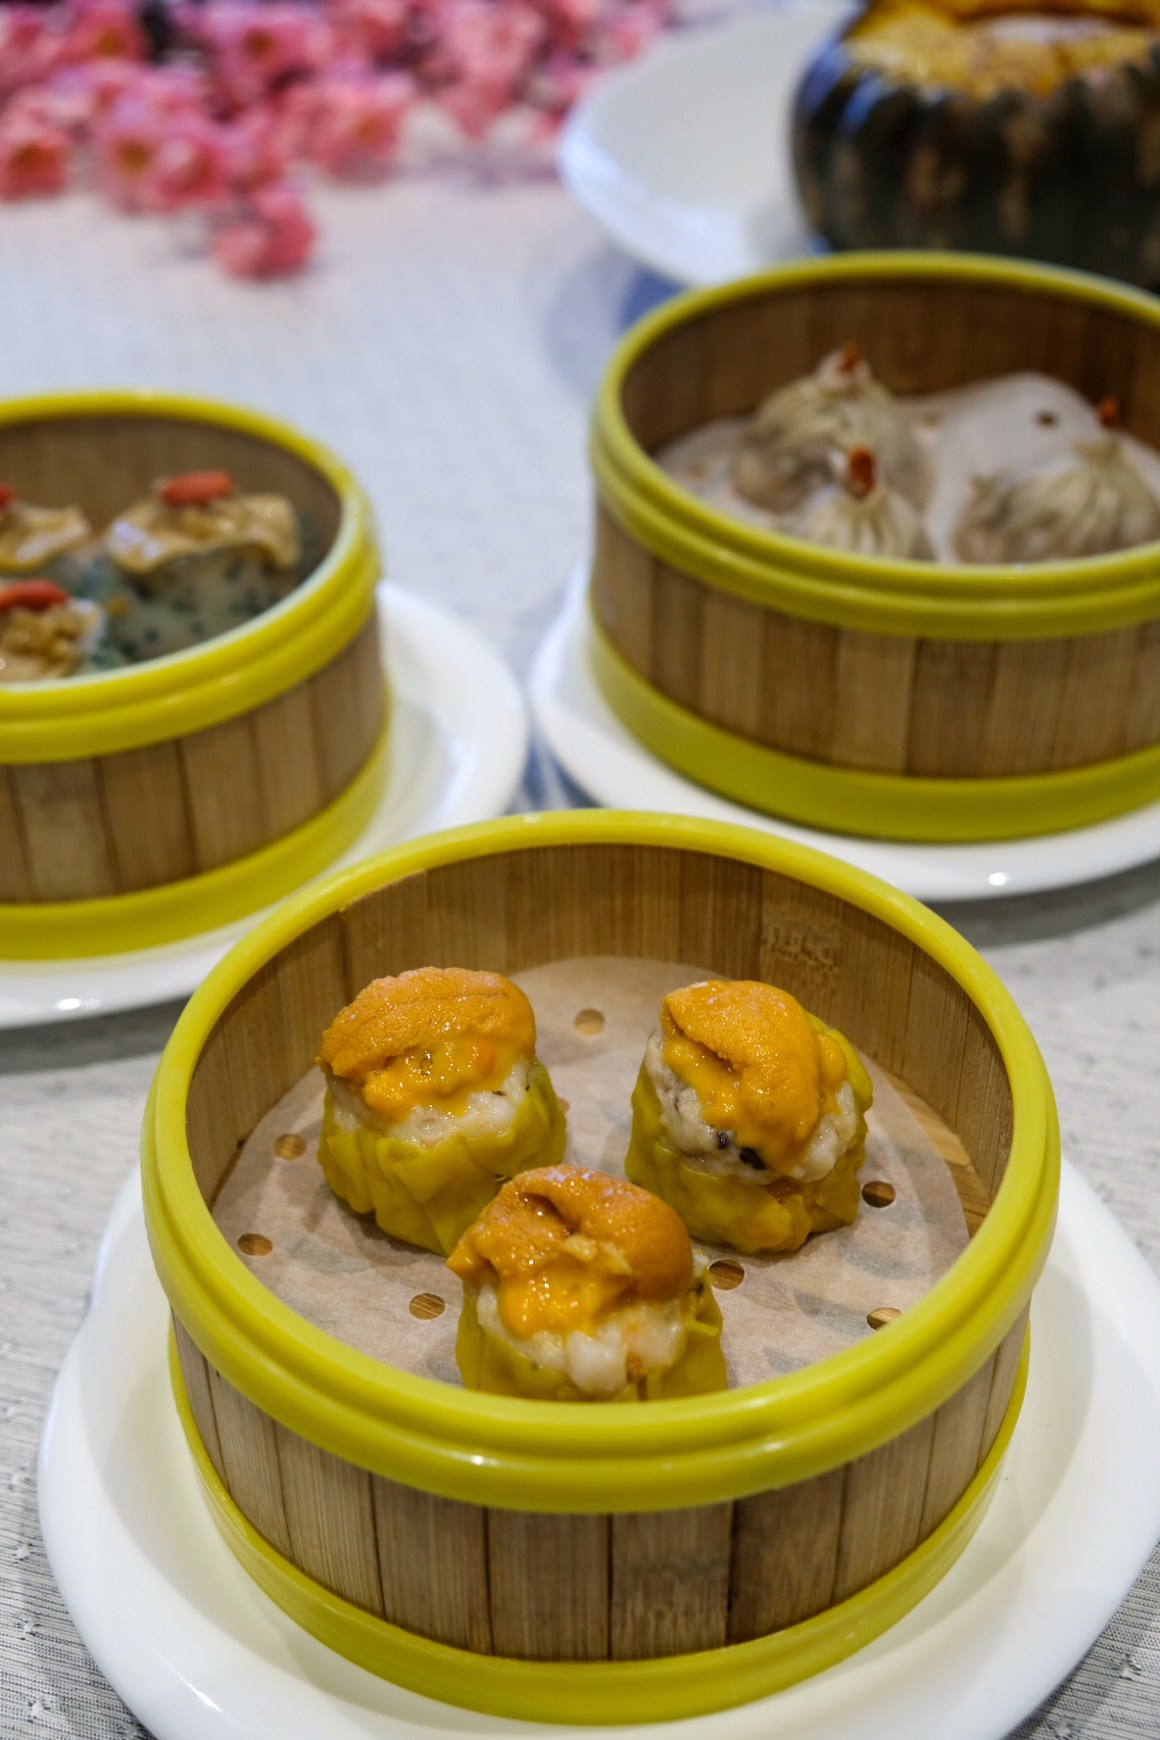 Peach Garden Oishi Flavours of Japan - Steamed Siew Mai with Sea Urchin 海胆烧卖 ($8.80++)